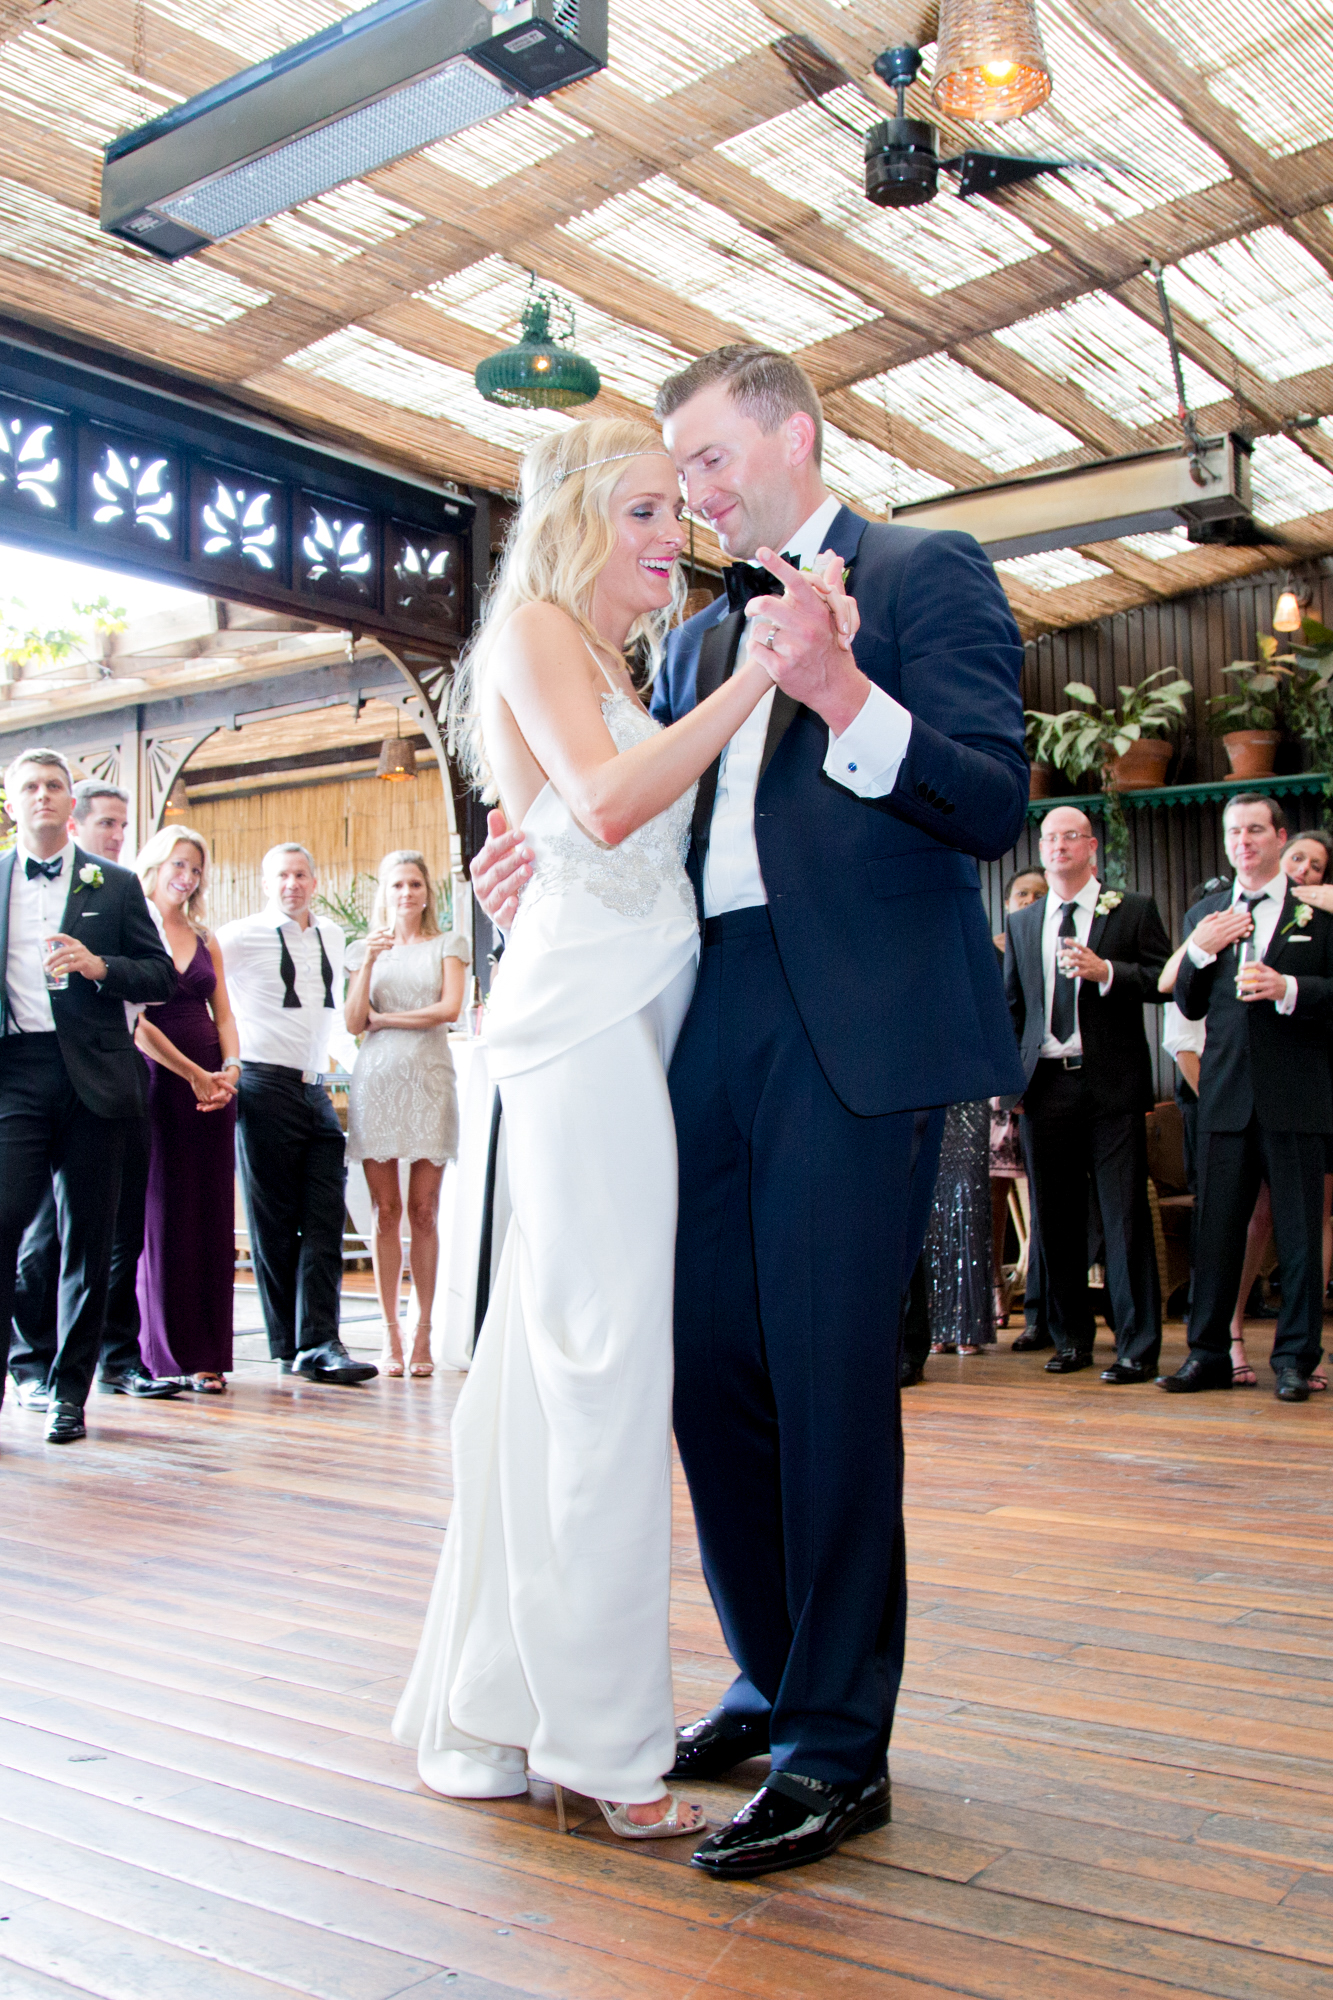 109_CarlyGaebe_SteadfastStudio_WeddingPhotography_Readyluck_NewYorkCity_Manhattan_Chelsea_ThePark_Reception_Bride_Groom_FirstDance.jpg